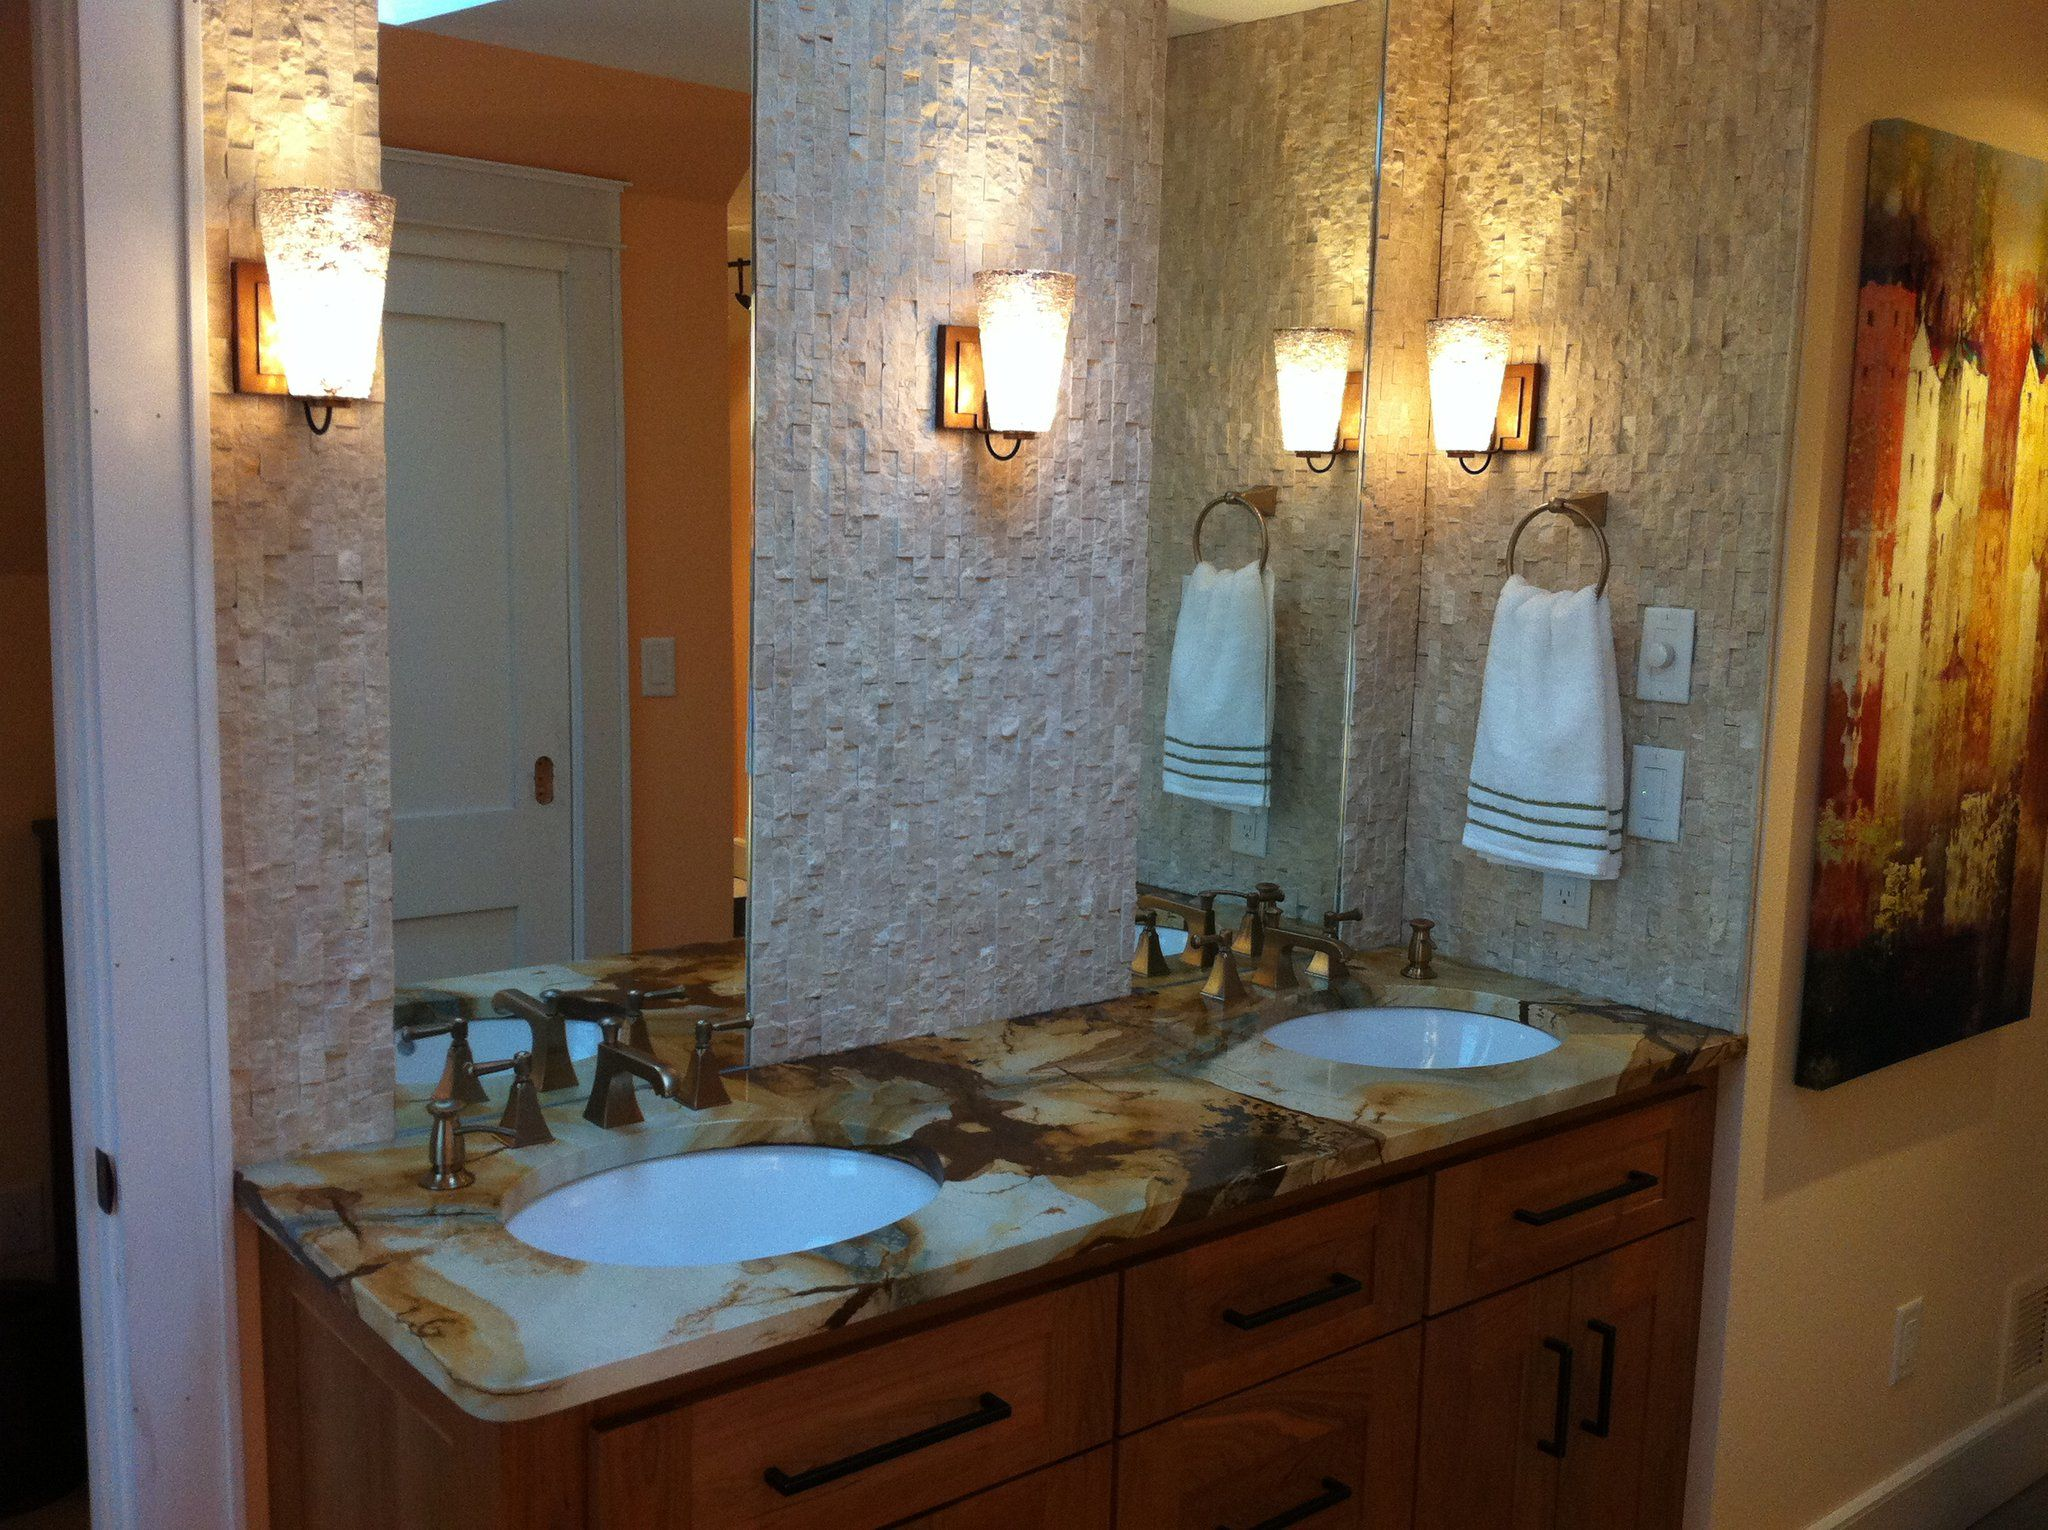 ideal bathroom vanity lighting design ideas. Bathroom Mirror Designs, Frame And Light - Interior Design The Ideal Will Need To Be Functional, Decorated, Well Illuminated. Vanity Lighting Ideas